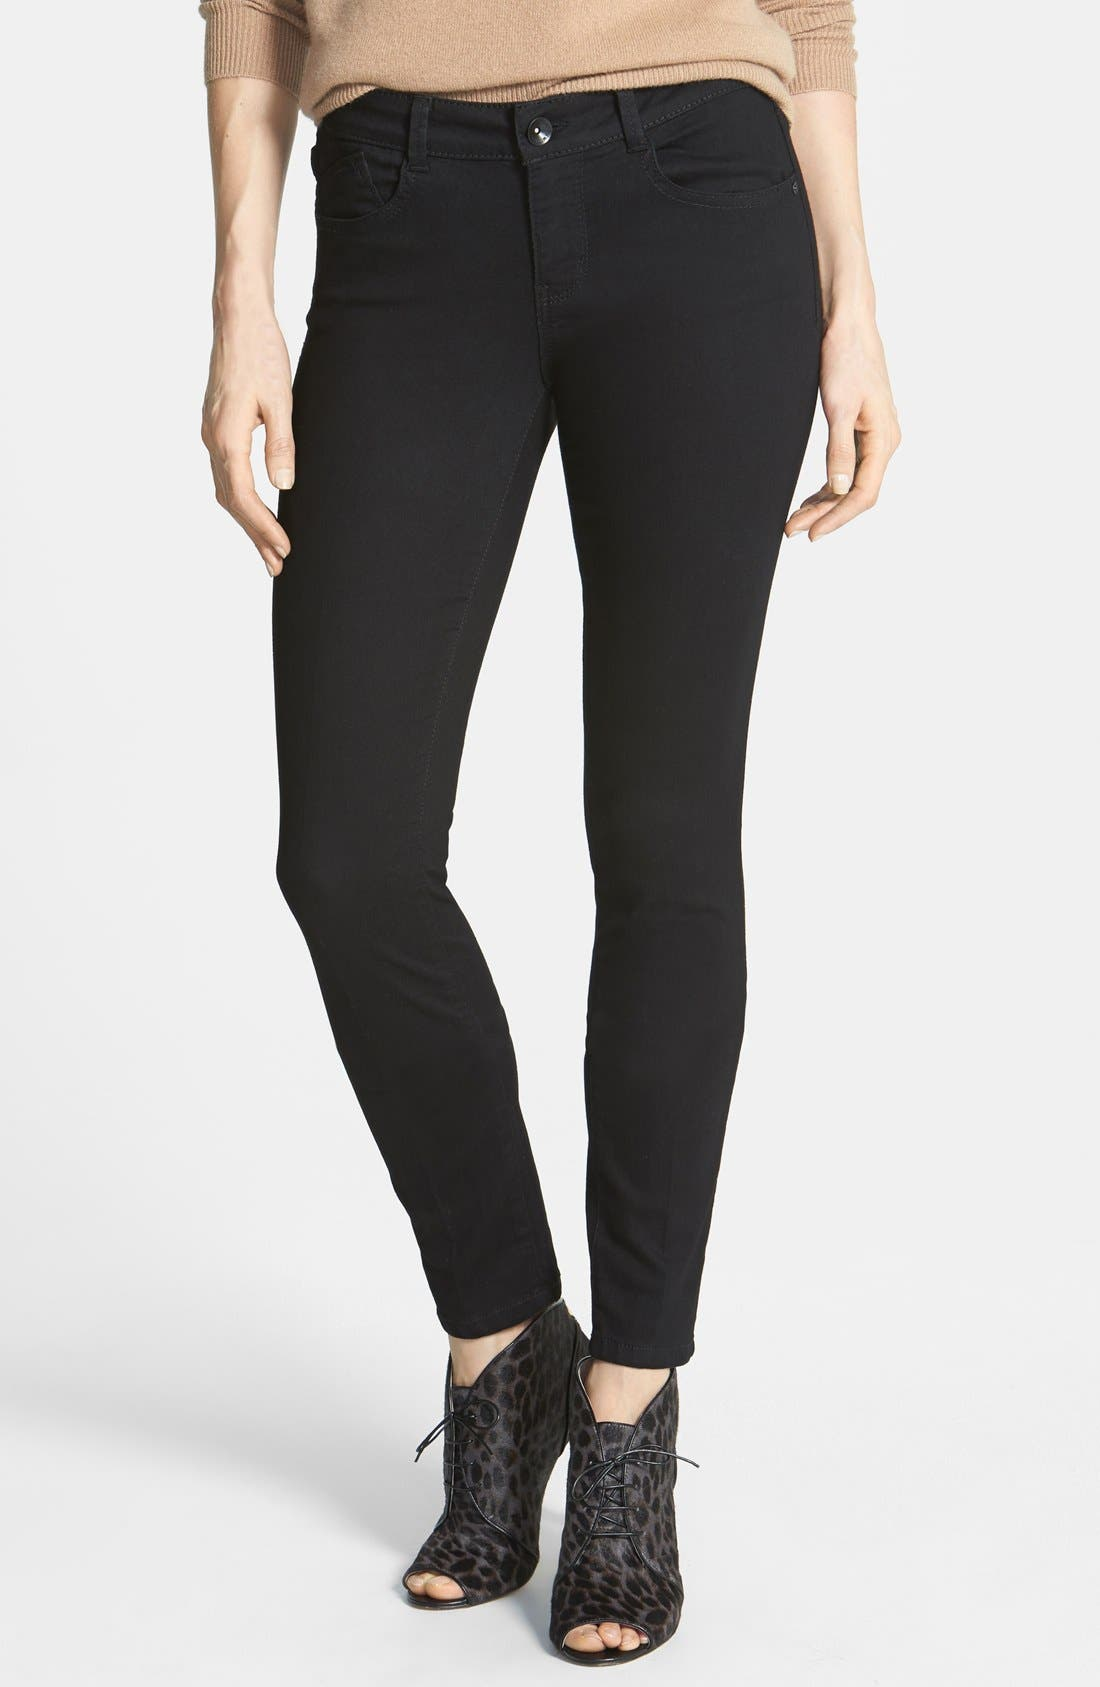 Alternate Image 1 Selected - Wit & Wisdom Lightweight Stretch Skinny Jeans (Black) (Nordstrom Exclusive)